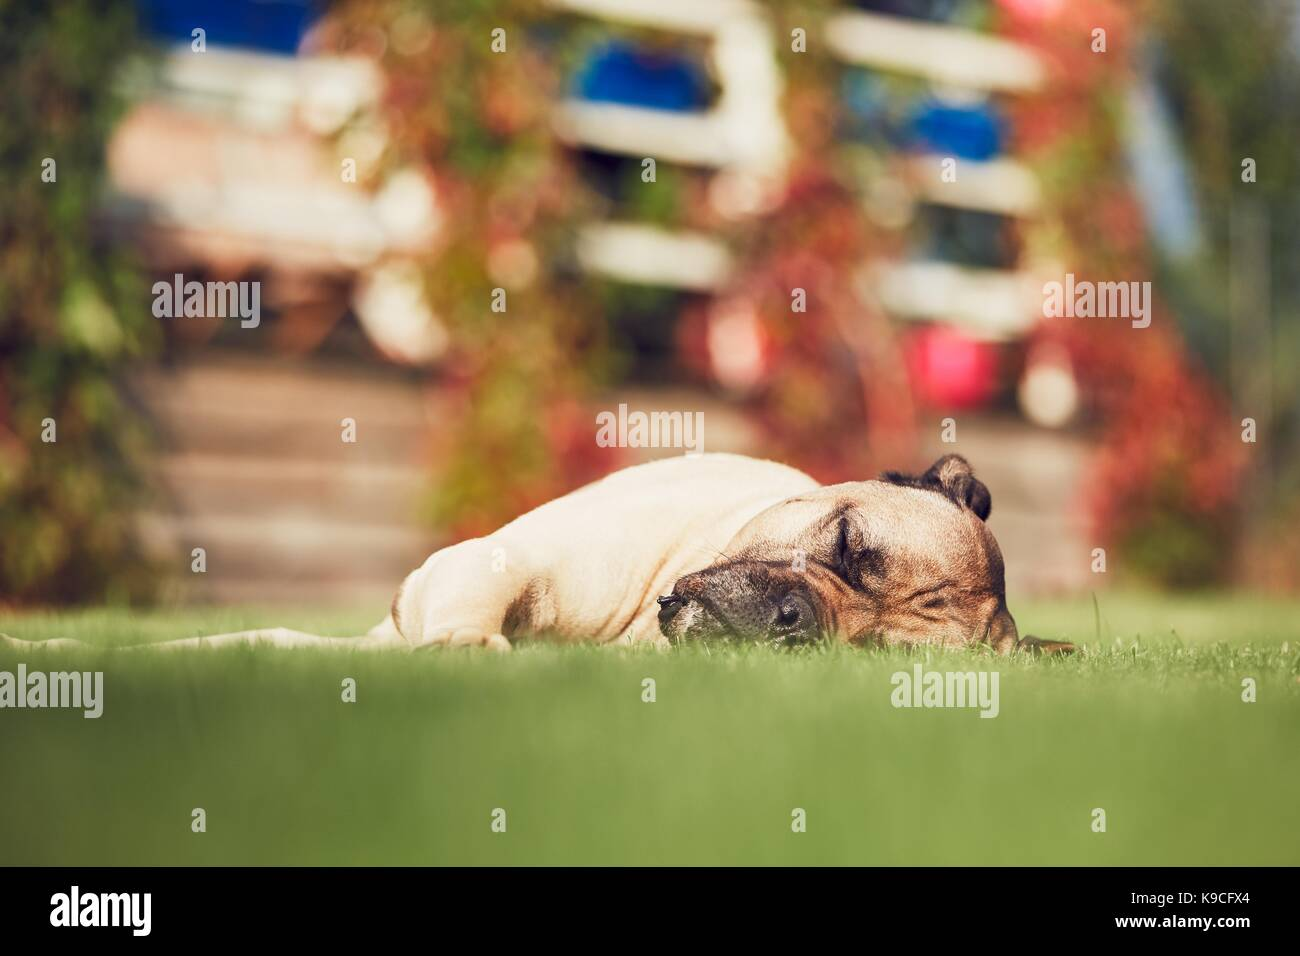 Huge dog (cane corso) sleeping in the garden of the family house. - Stock Image